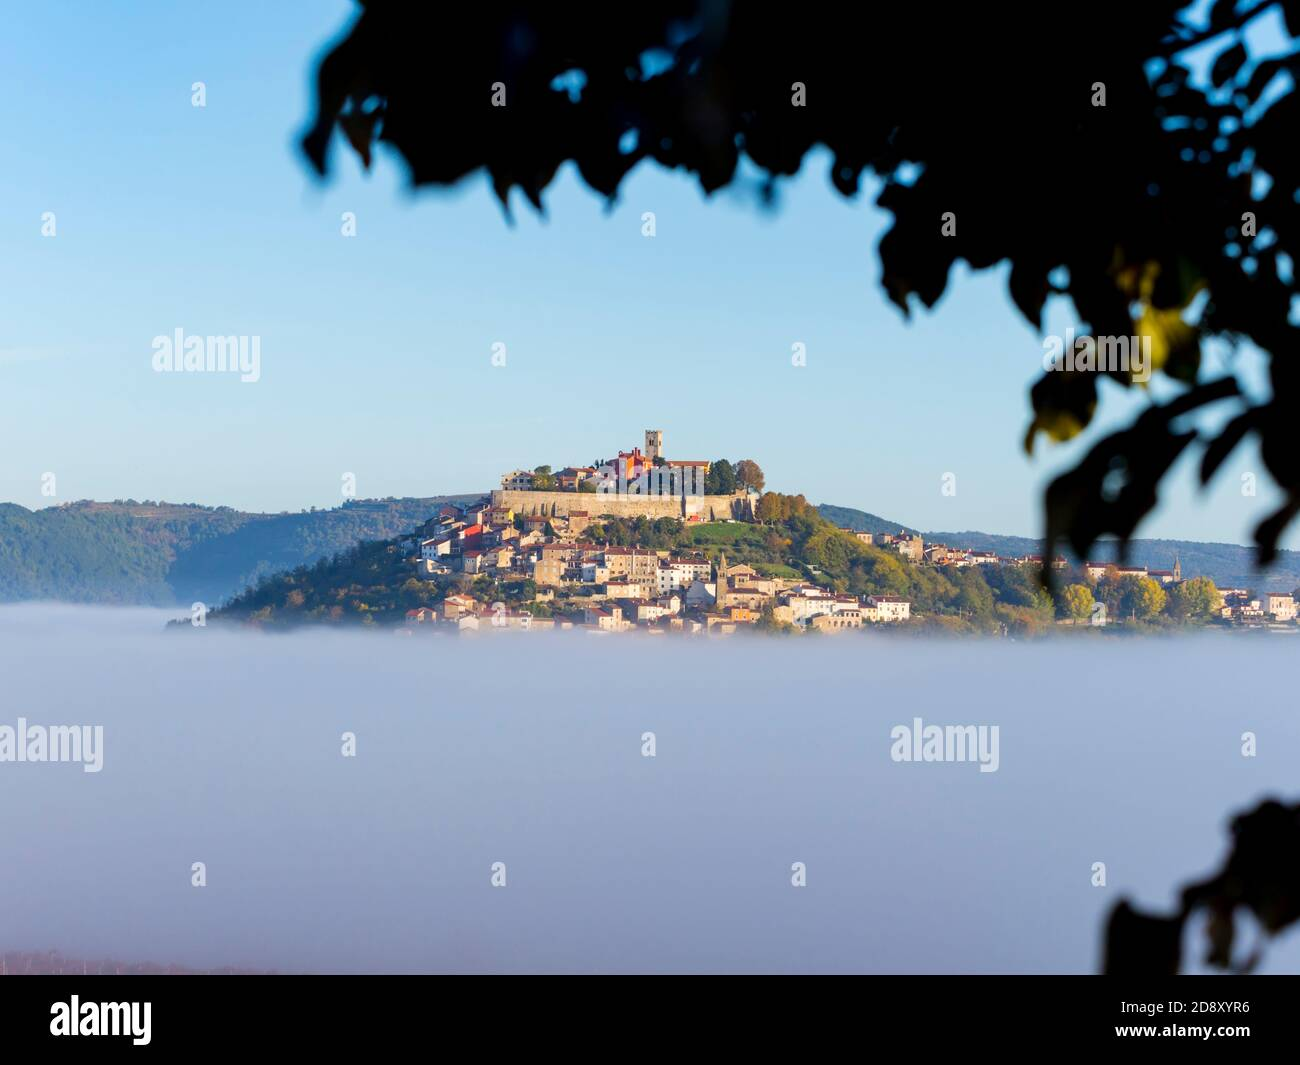 Like floating old town above thick fog stunning Motovun in Istria Croatia Europe tree branch leaves silhouetting blurry in foreground Stock Photo